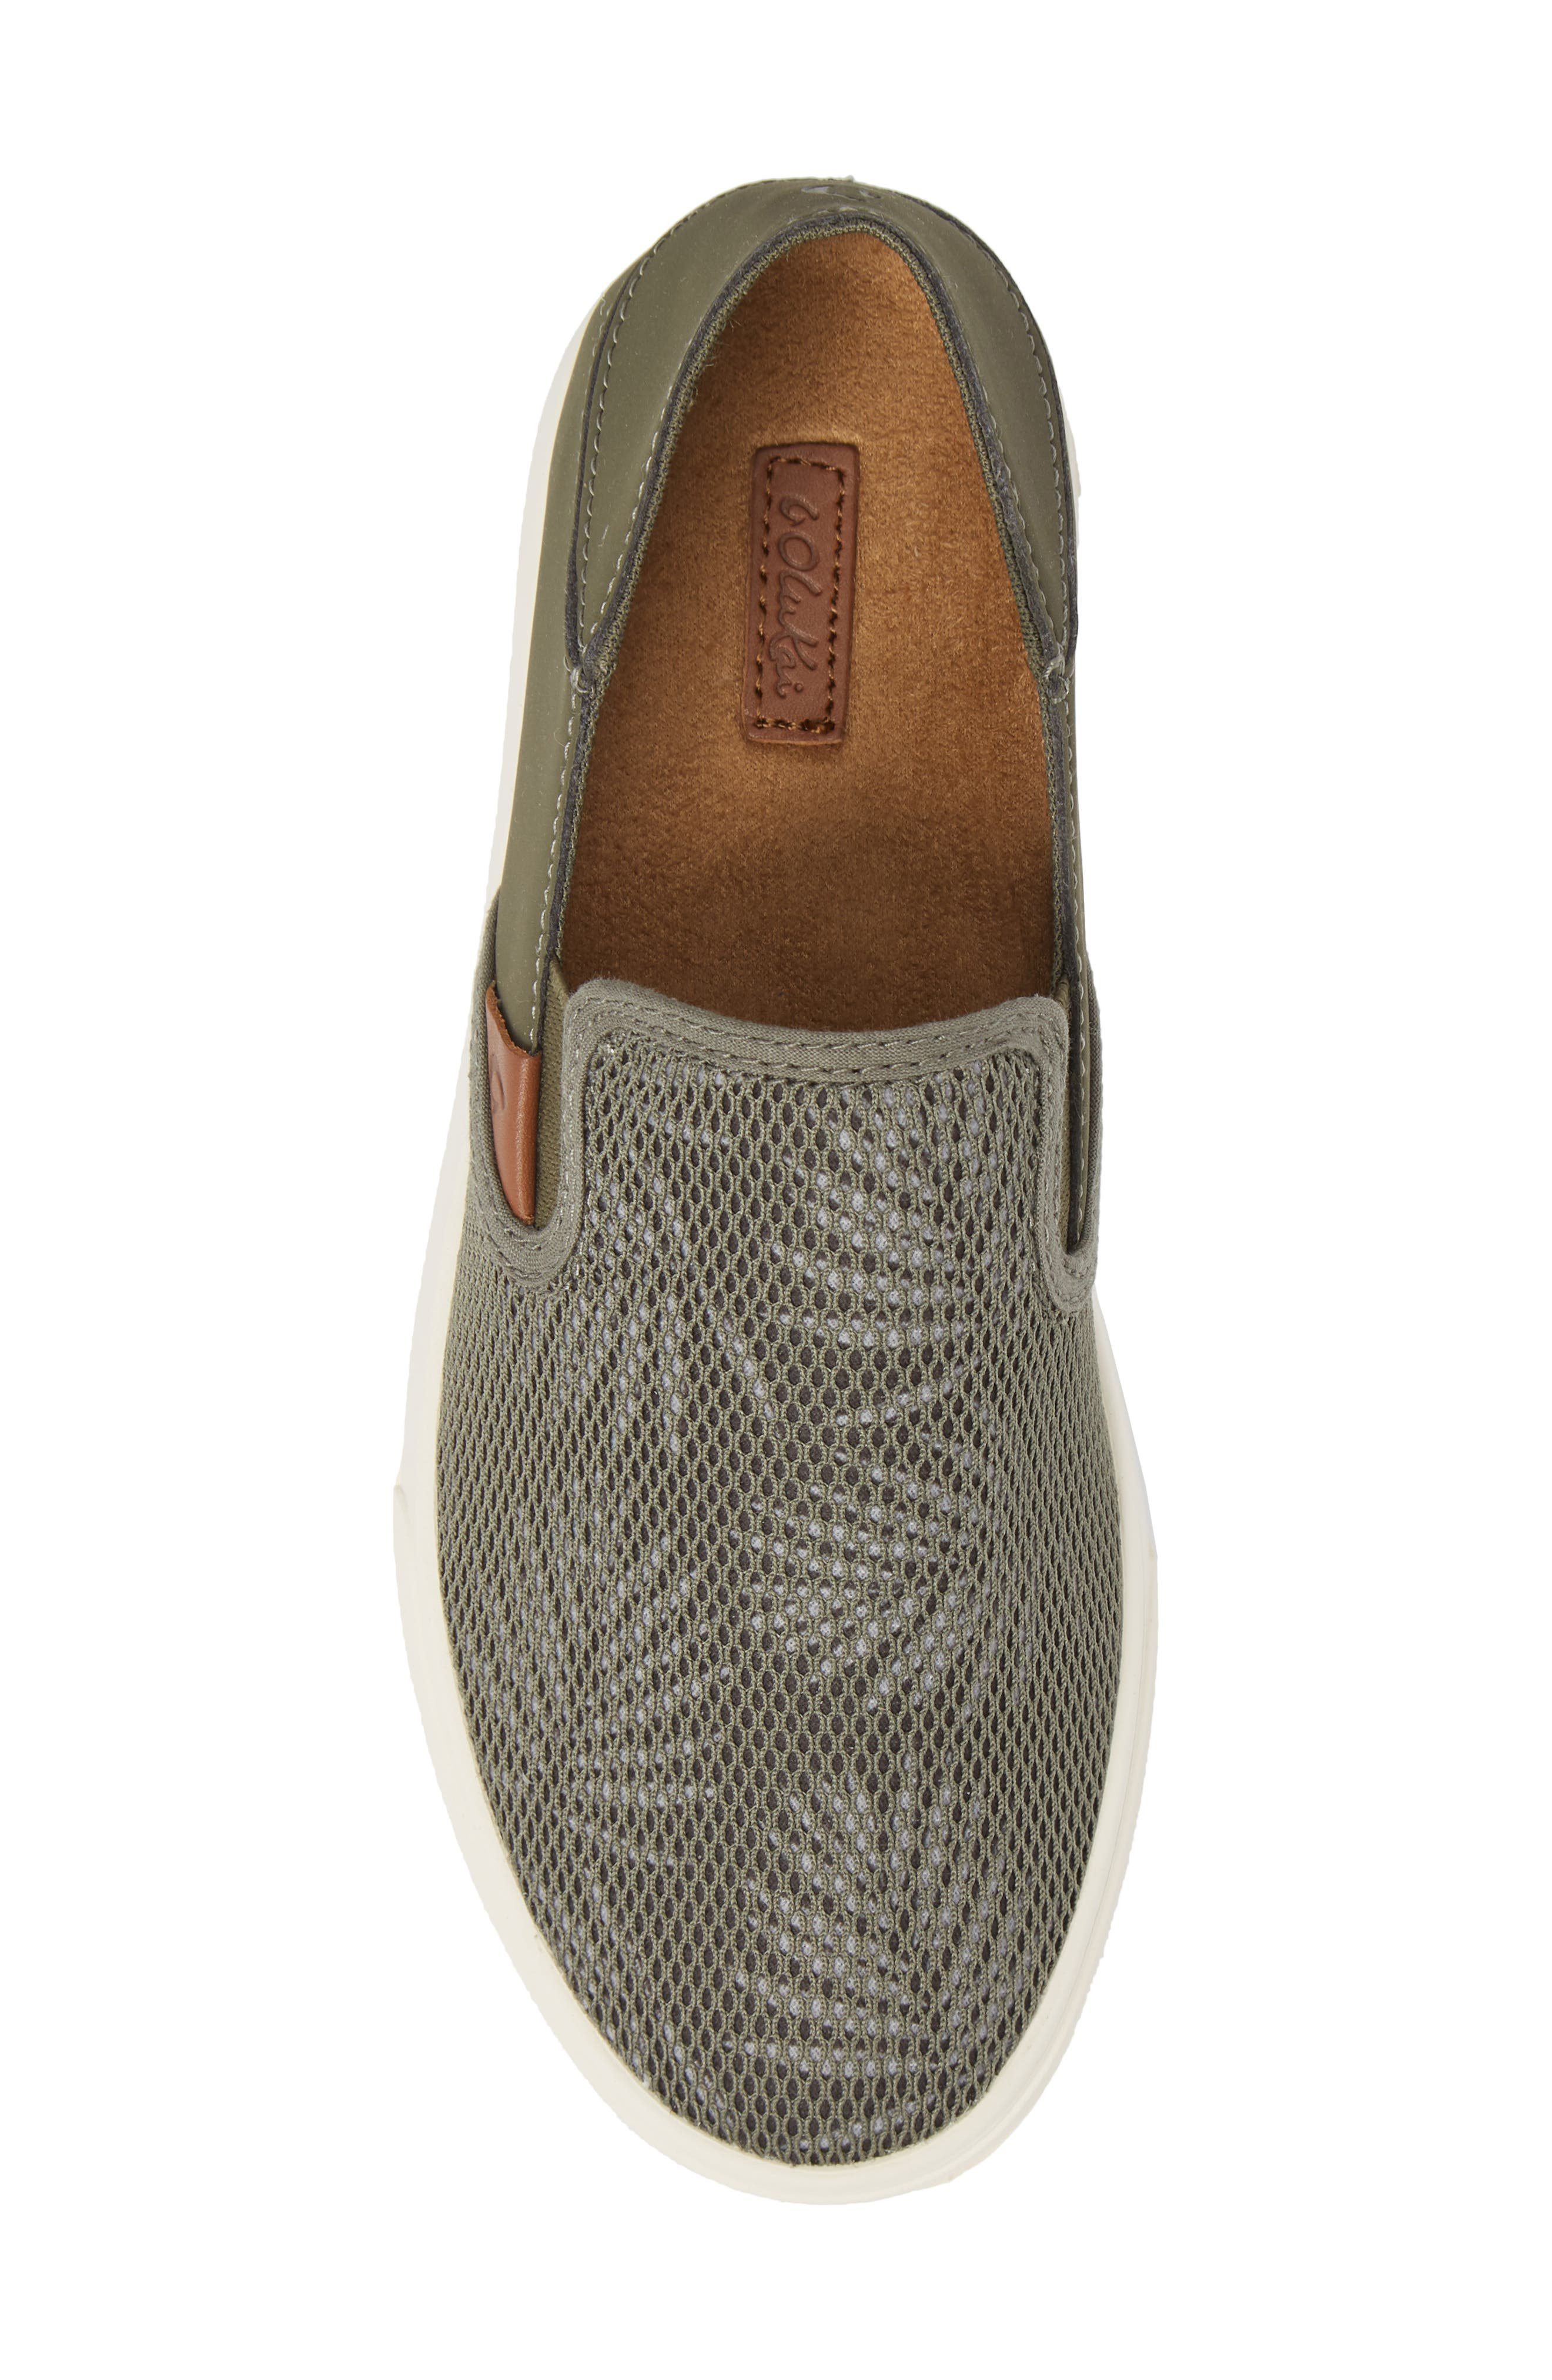 'Pehuea' Slip-On Sneaker,                             Alternate thumbnail 4, color,                             Dusty Olive/ Palm Fabric